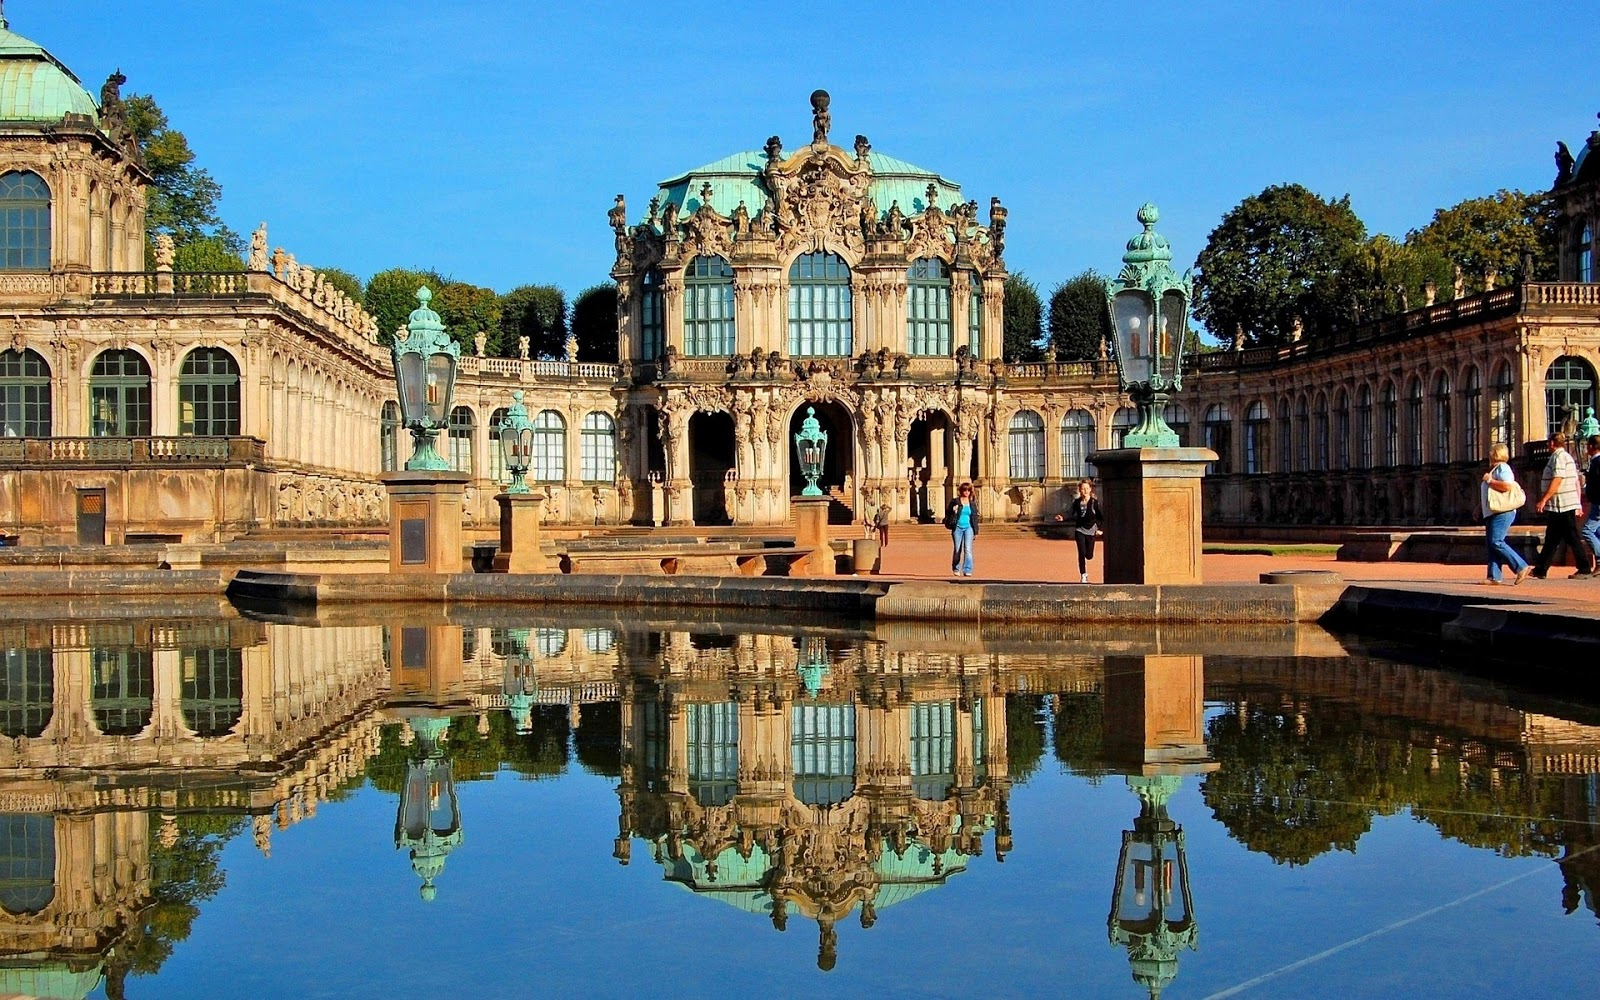 Central Europe Dresdner Zwinger Zwinger Palace